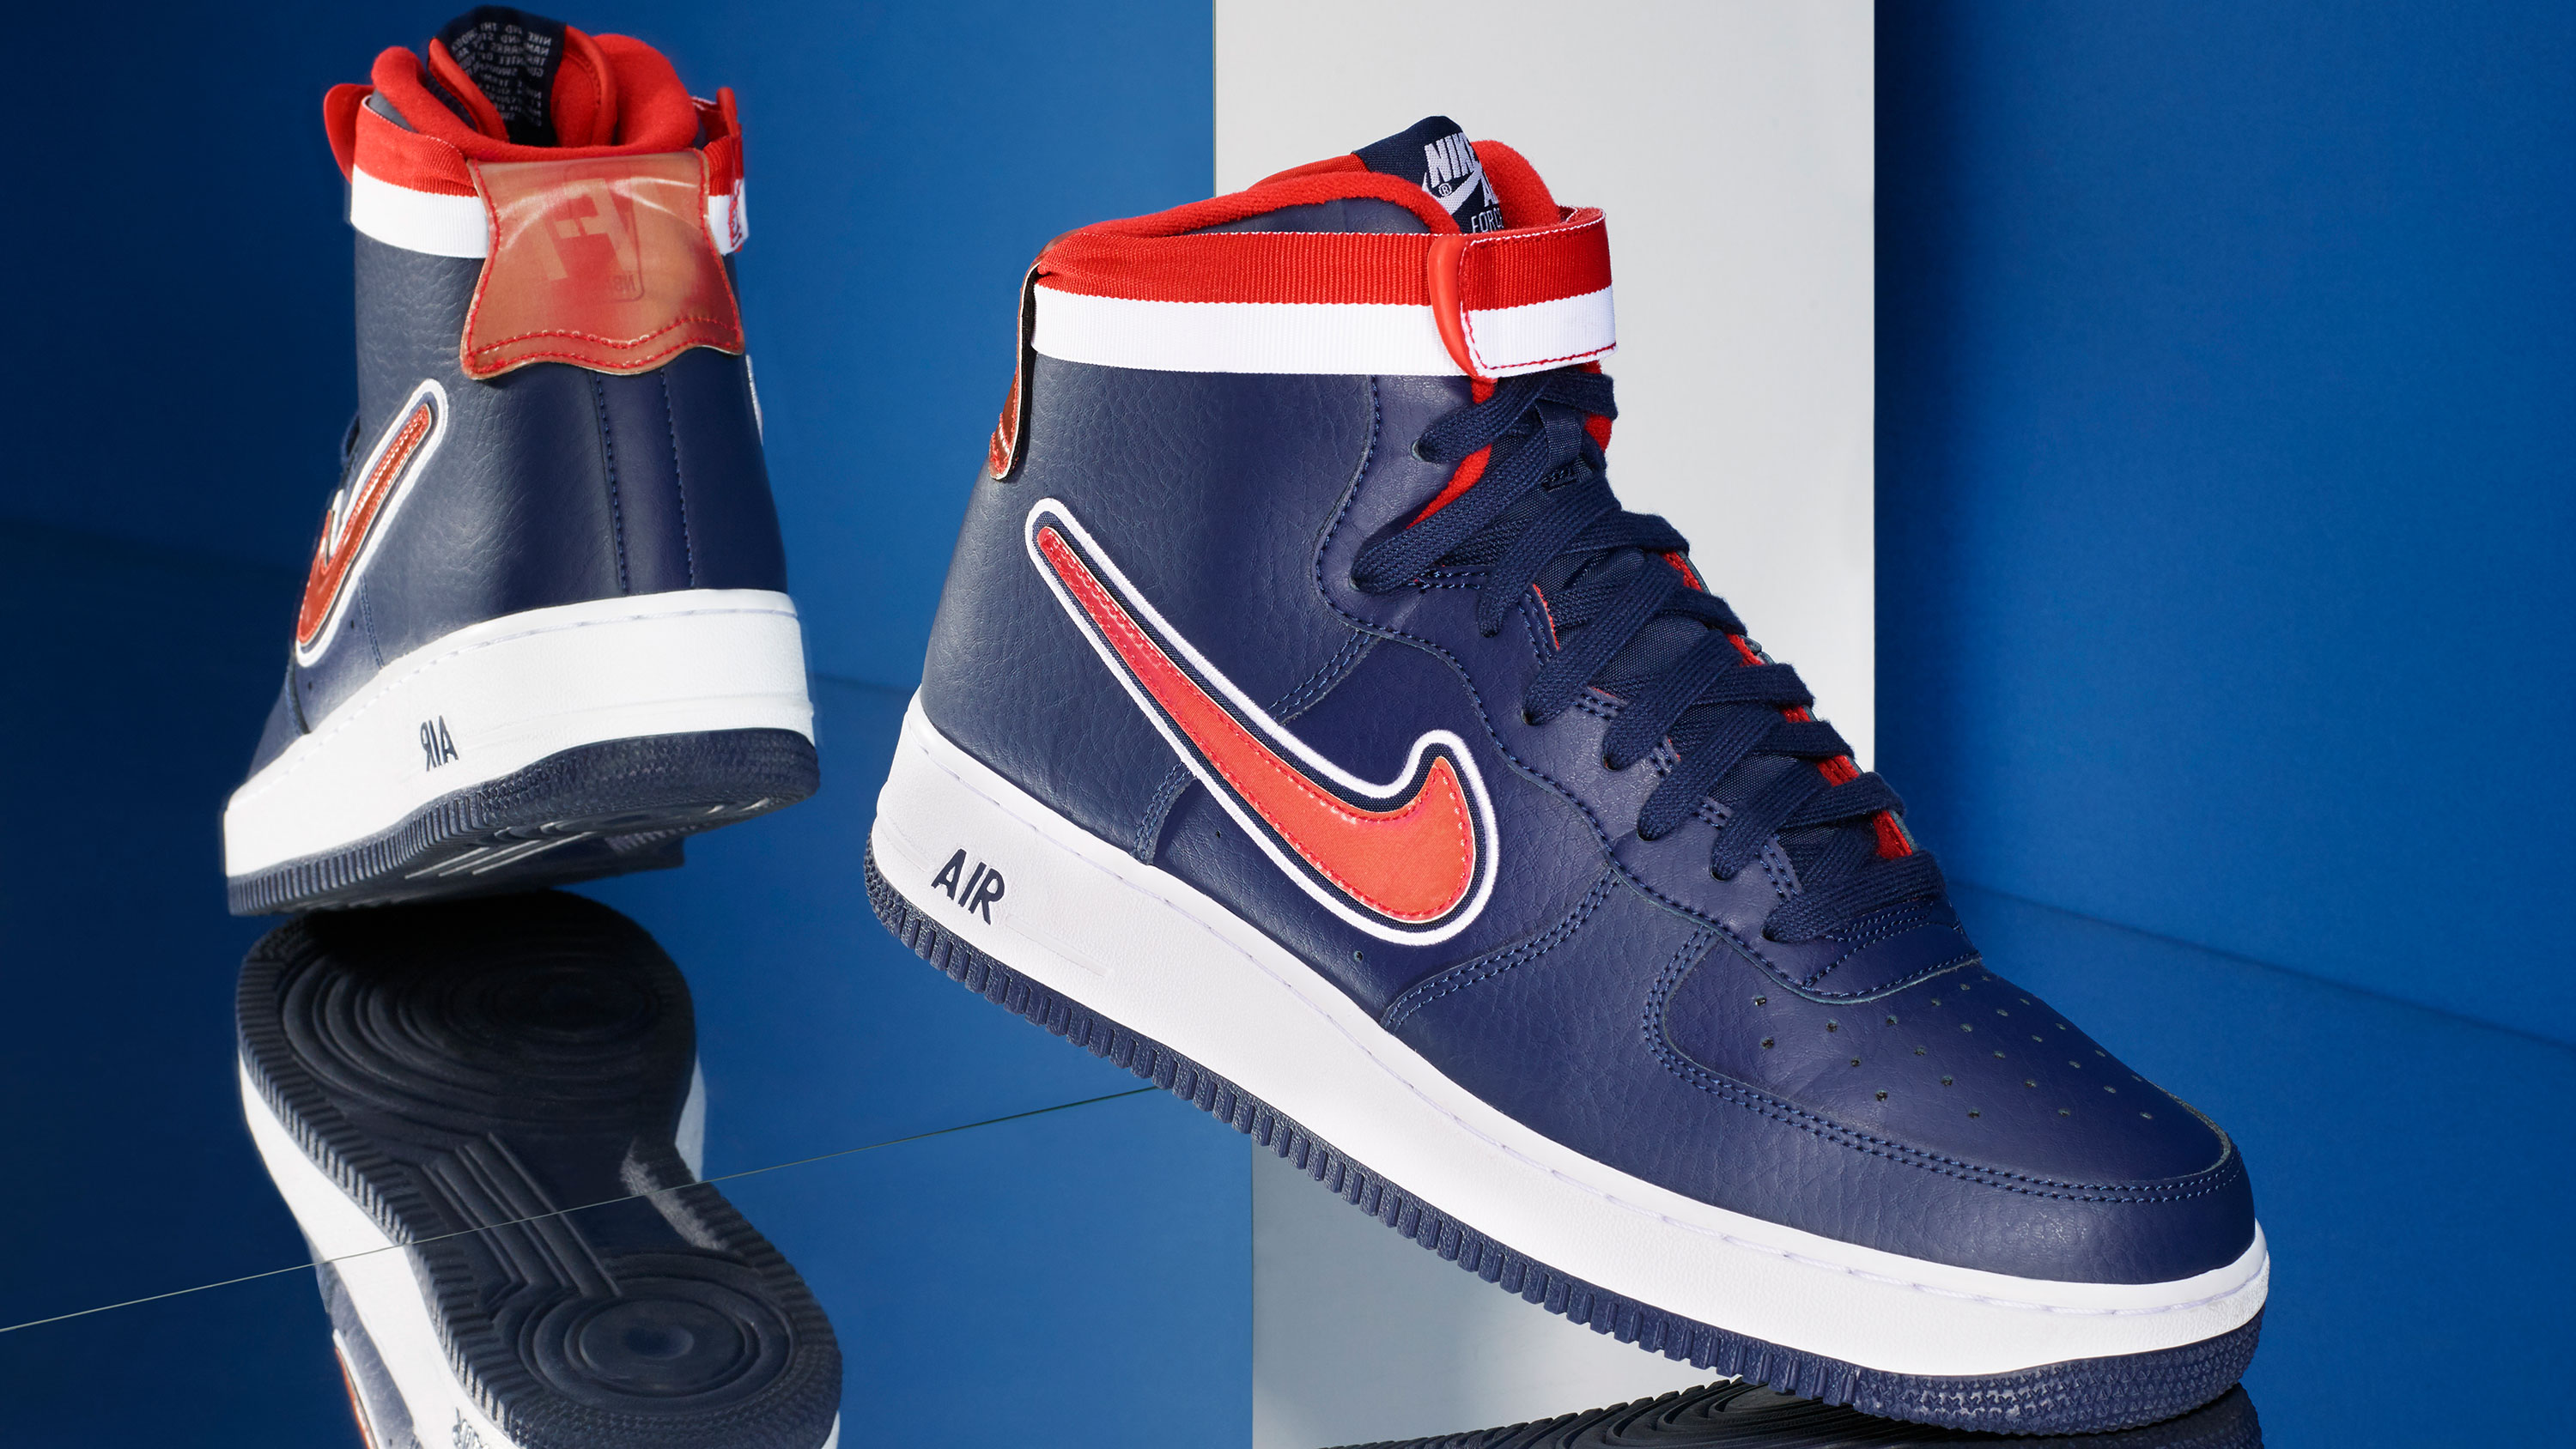 a409dd73e8 When it comes down to it, the Air Force 1 and the NBA are inseparable.  That's why this year, Nike decided to release the AF-1 'NBA Pack'.